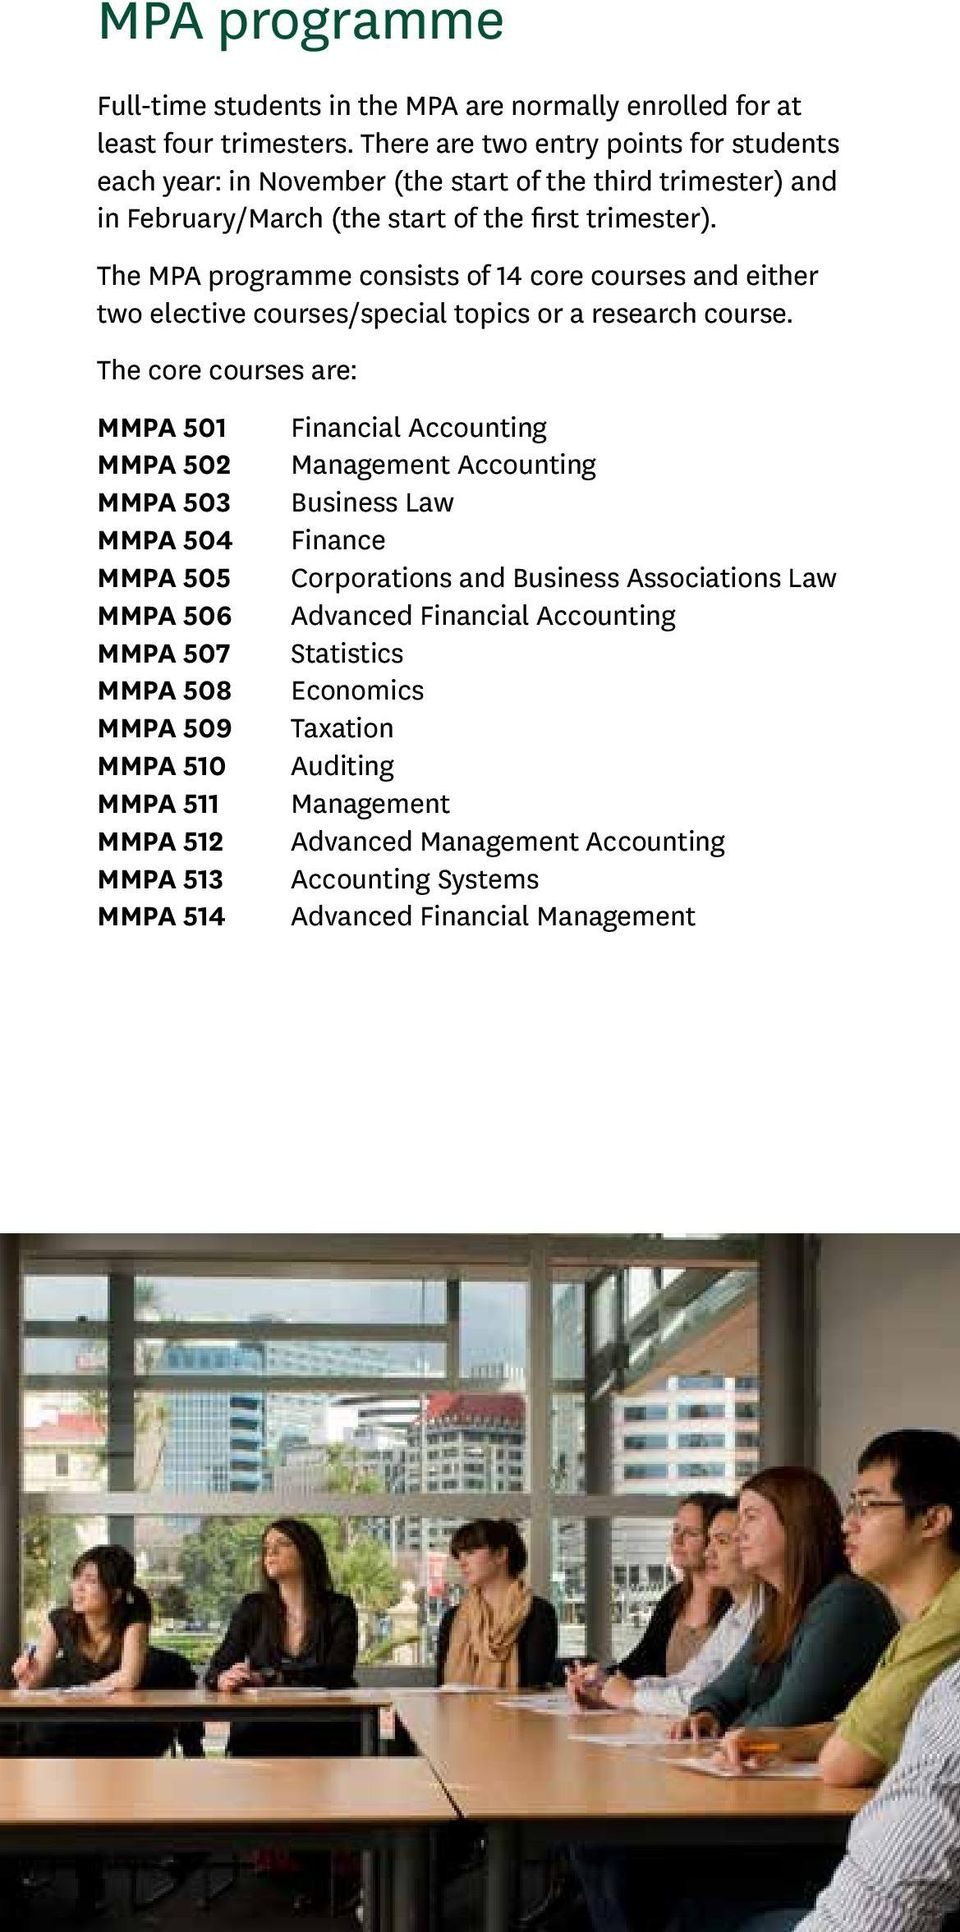 The MPA programme consists of 14 core courses and either two elective courses/special topics or a research course.